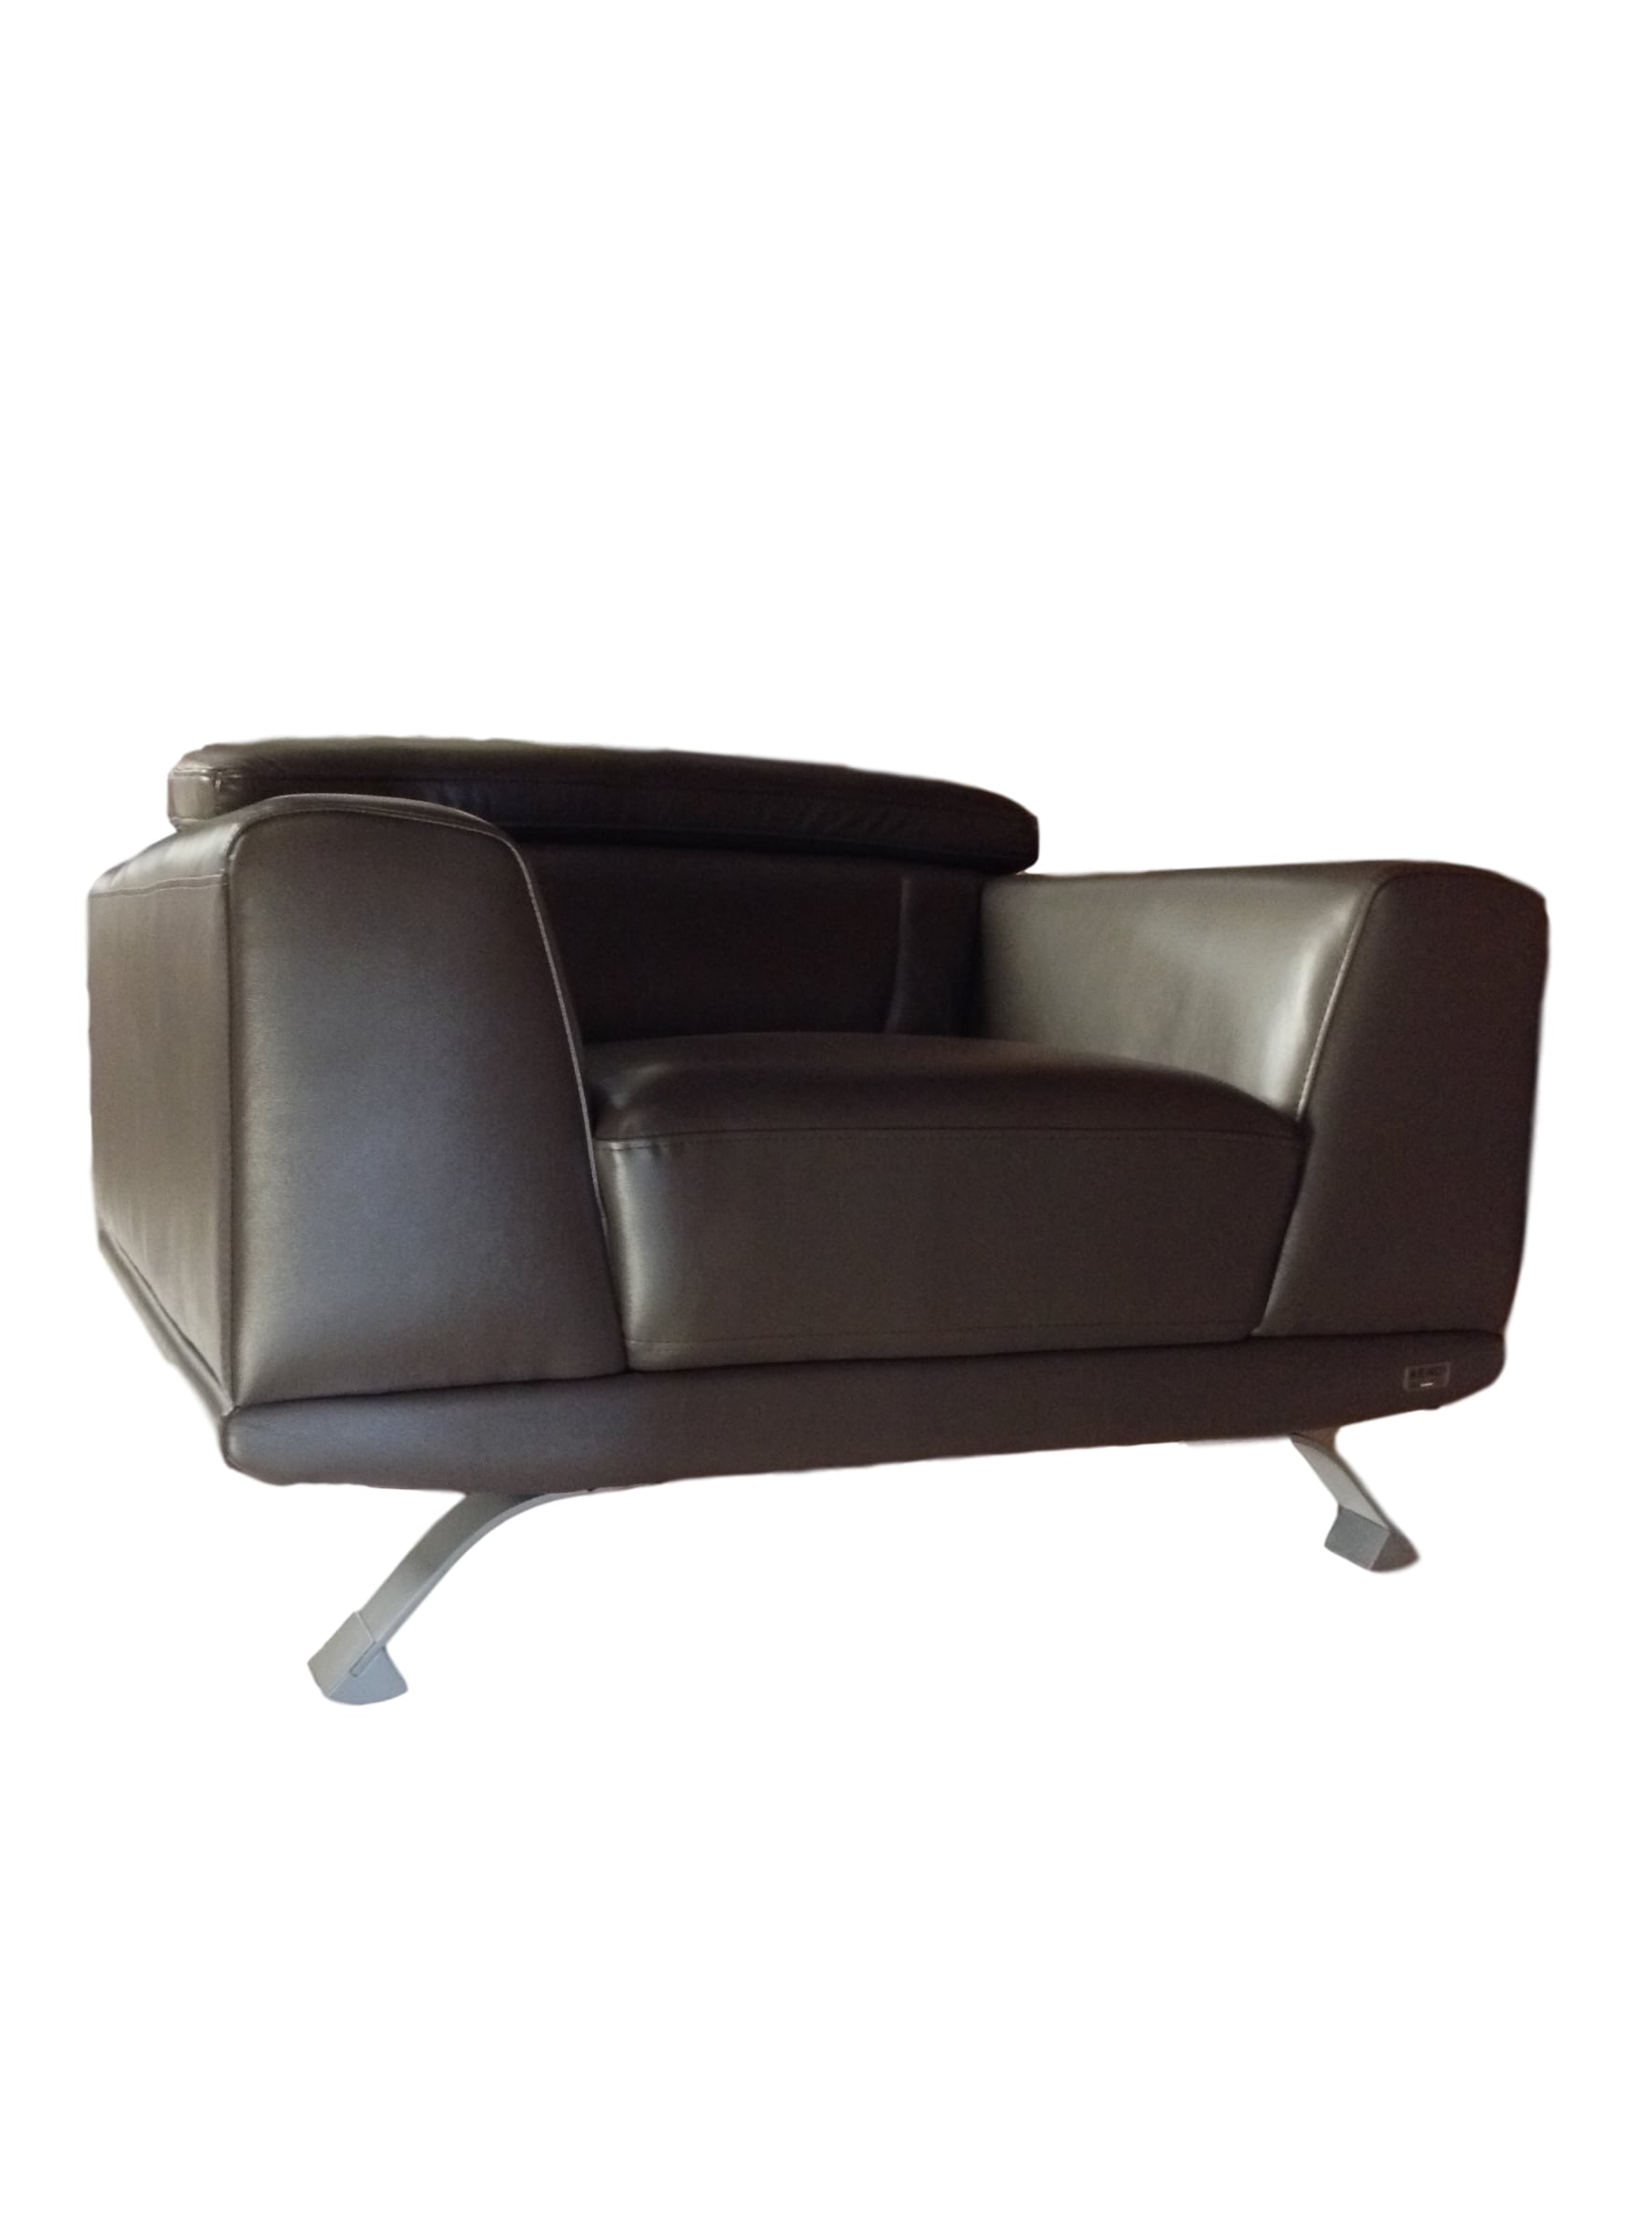 Brustle Modern Dark Grey Eco Leather Sofa Chair 77187b